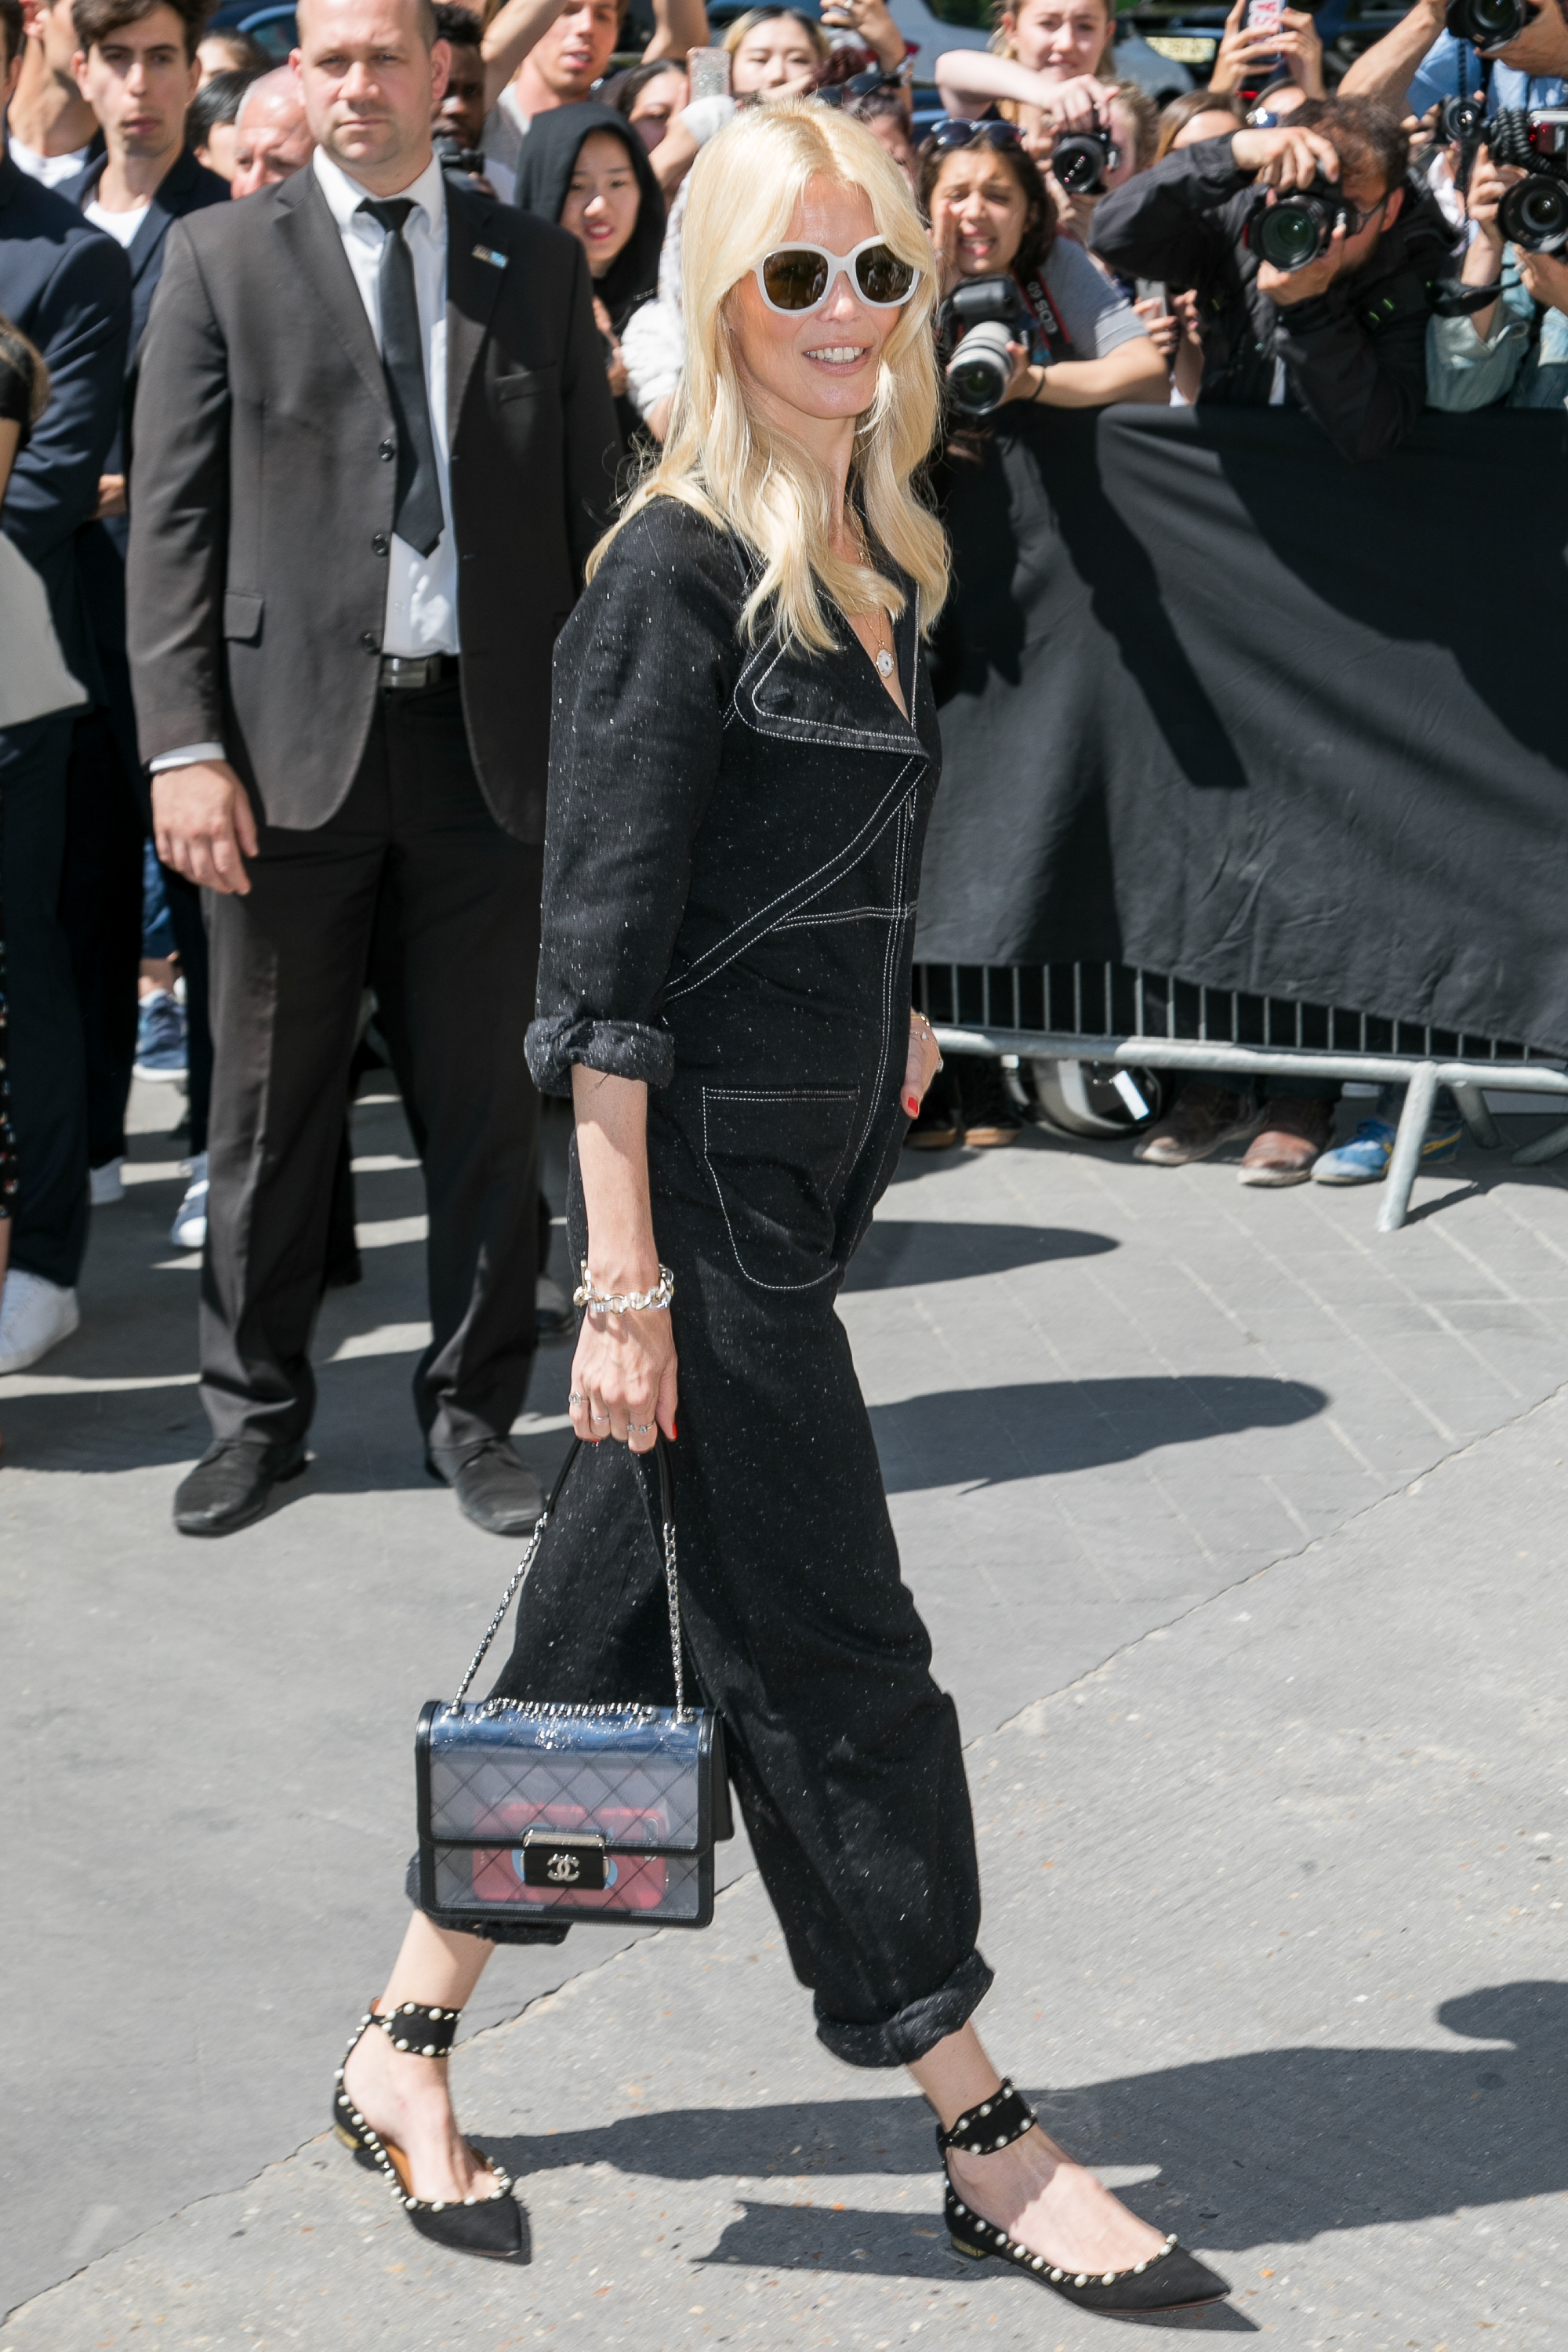 "<p>The <a href=""http://style.nine.com.au/2017/06/01/12/27/sistine-stallone-chanel-tokyo-lily-depp"" target=""_blank"">Chanel</a> show in Paris on Tuesday drew the haute couture and Hollywood A-list but it was Claudia Schiffer, 46, in a denim jumpsuit that showed the title of 'supermodel' doesn't disappear when you retire from the runway.</p> <p> In white sunglasses the German who rose to fame as a Guess campaign girl, going on to become one of Karl Lagerfeld's muses in the '90s, was an understated blonde bombshell, standing out from the peroxide pixie crop pack of pop singer Katy Perry, Kristen Stewart and Cara Delevingne.</p> <p>While there were some adventurous front row outfits, with Kristen dressed in a reflective sleeveless jumpsuit looking as though she had stepped of the Studio 54 dancefloor, Karl kept things understated in his runway tribute to the Eiffel Tower.</p> <p>See the battle of the blondes and other shades of success here.</p> <p> </p>"